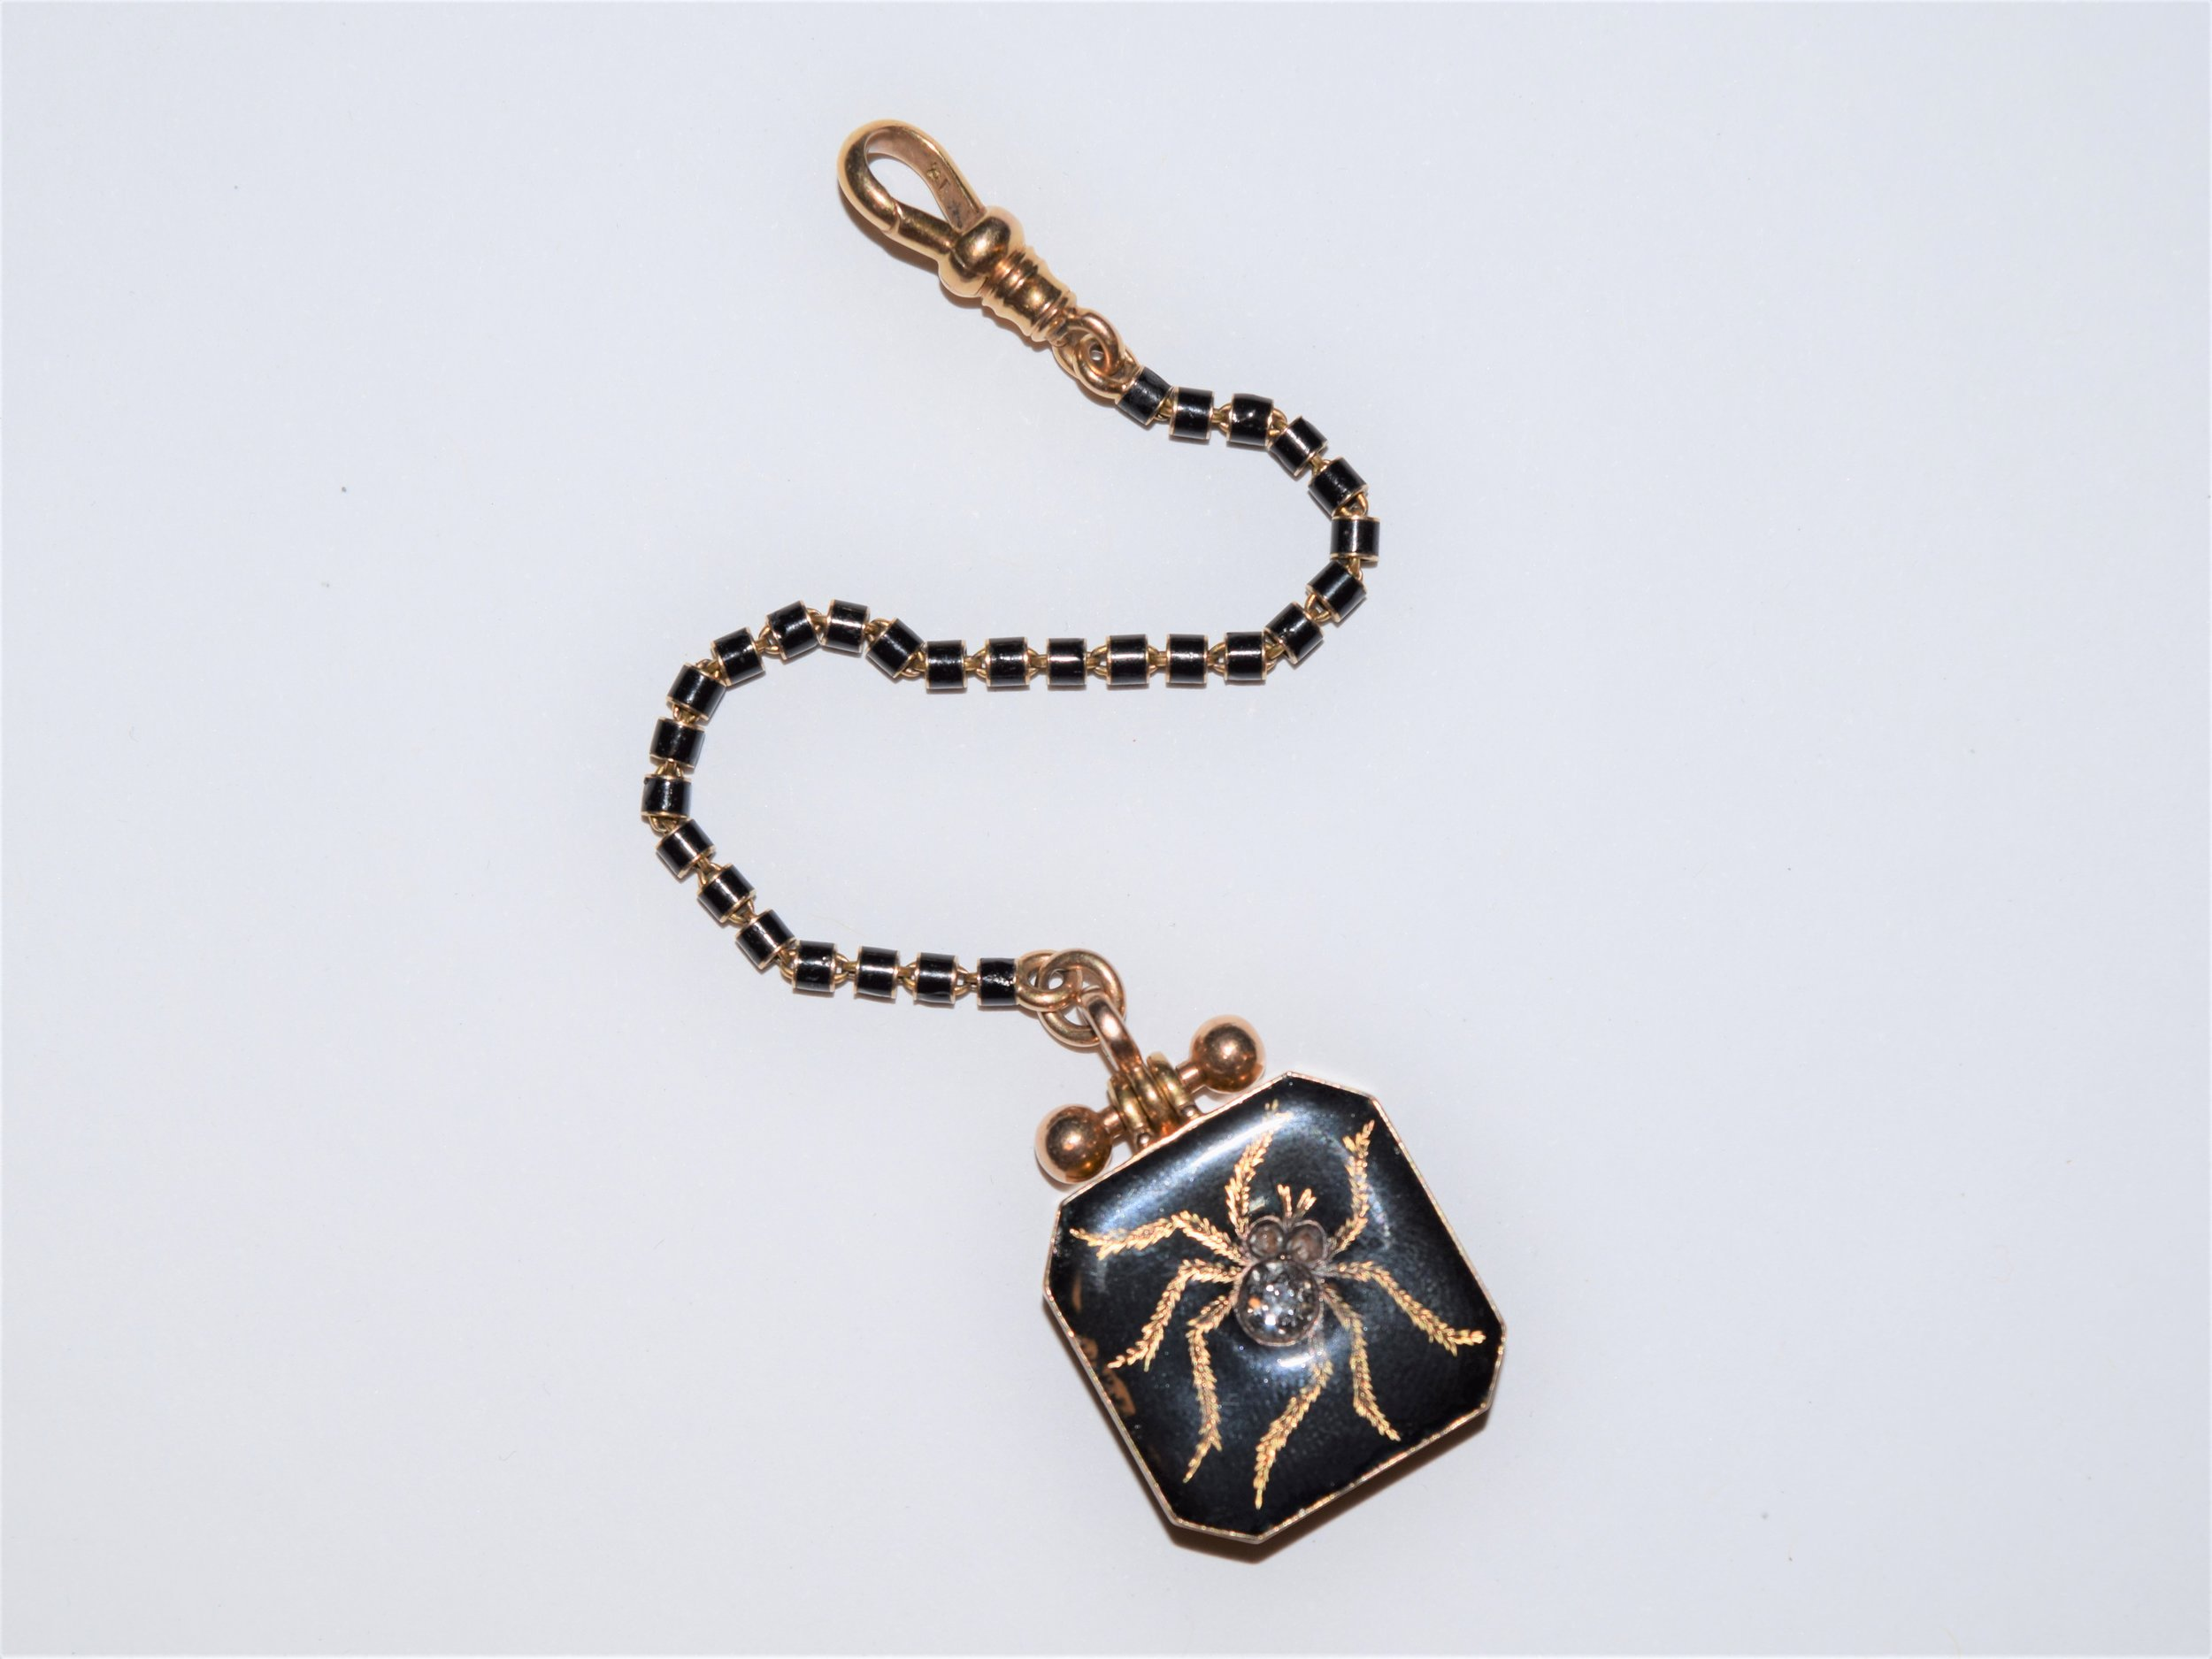 Early 20th Century 14K gold locket watch fob with black enamel and a spider design set with an old mine cut diamond.